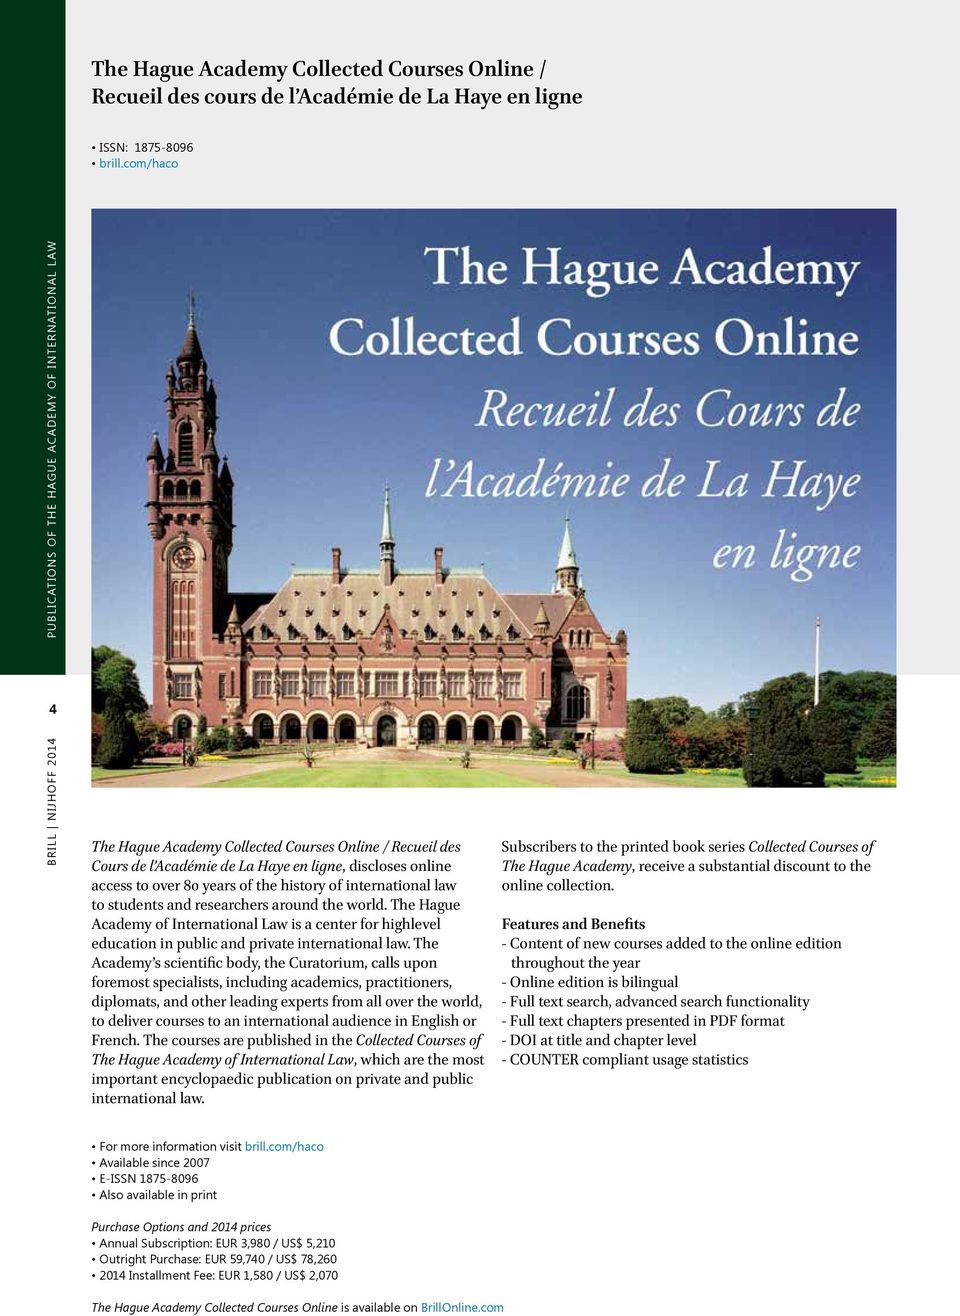 and researchers around the world. The Hague Academy of International Law is a center for highlevel education in public and private international law.